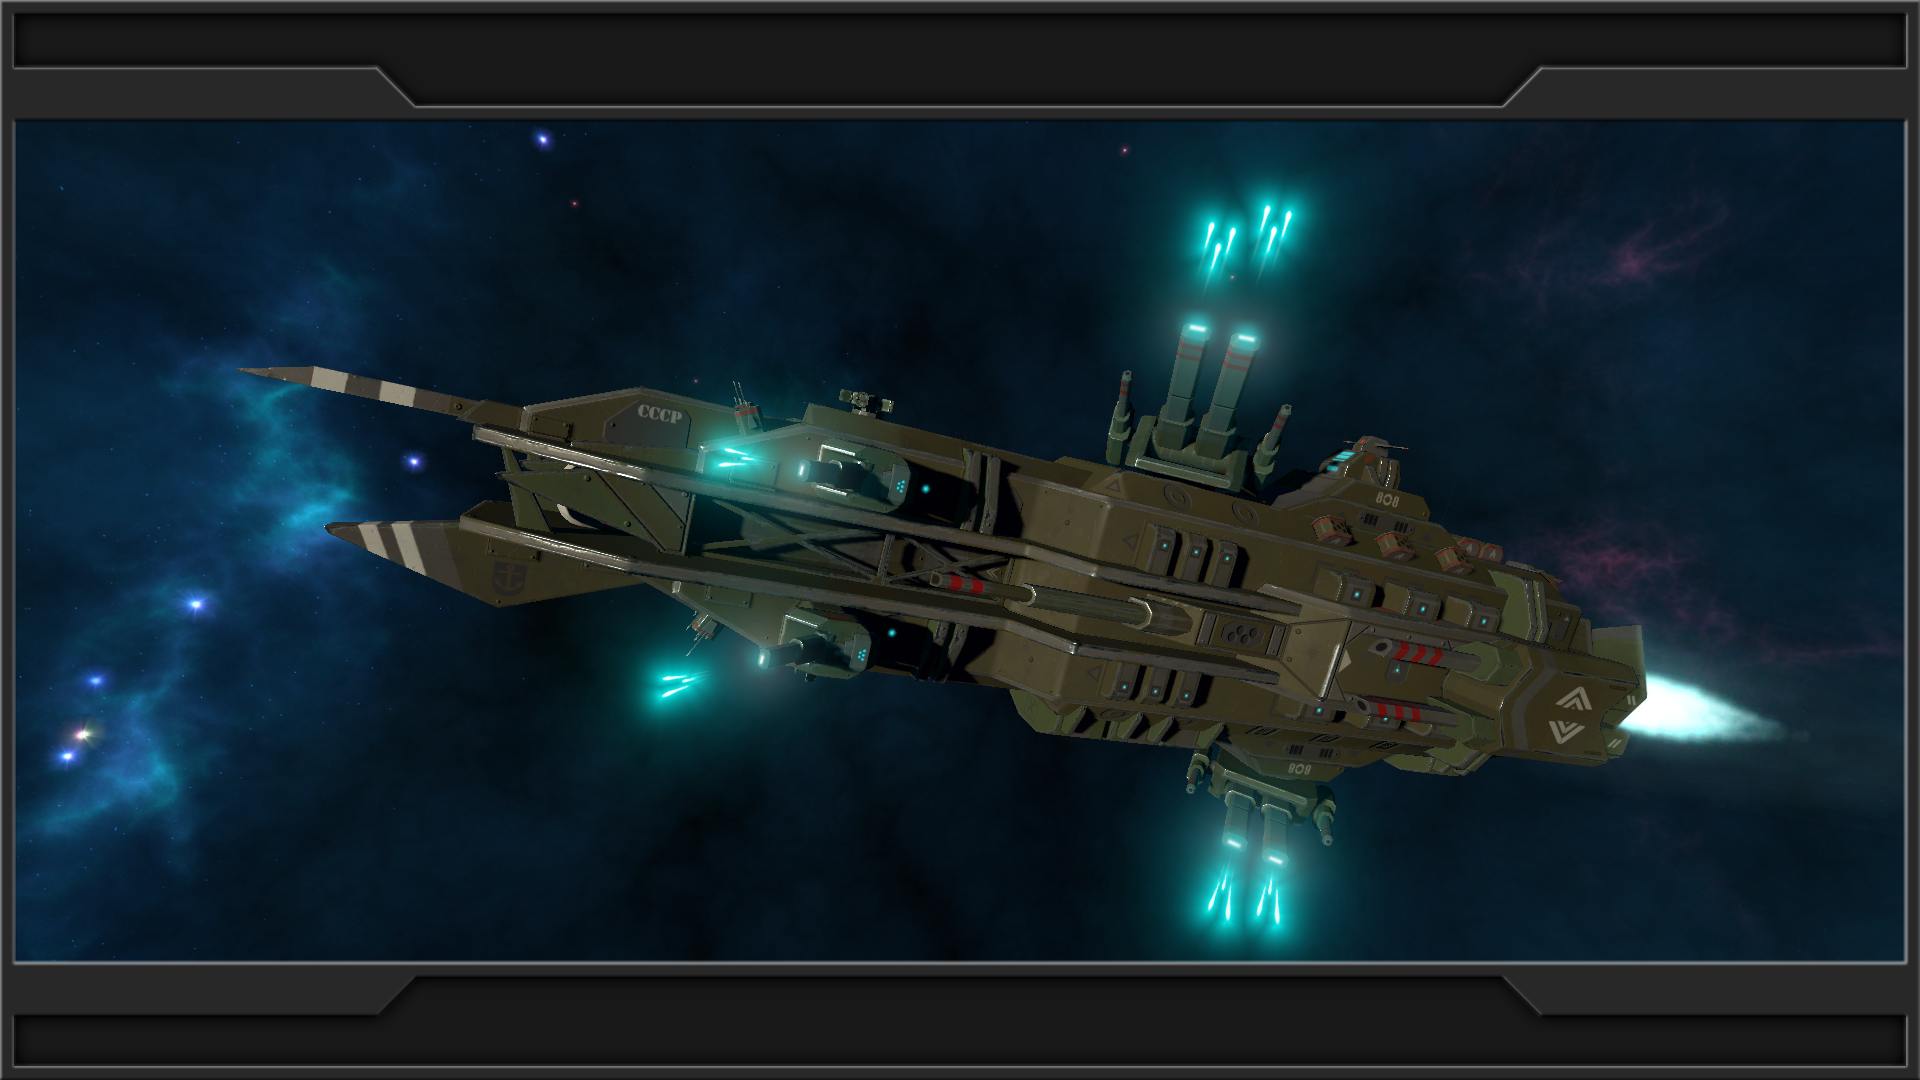 D Spaceship Models For Game Design And Development Unity Forum - Spaceship design game